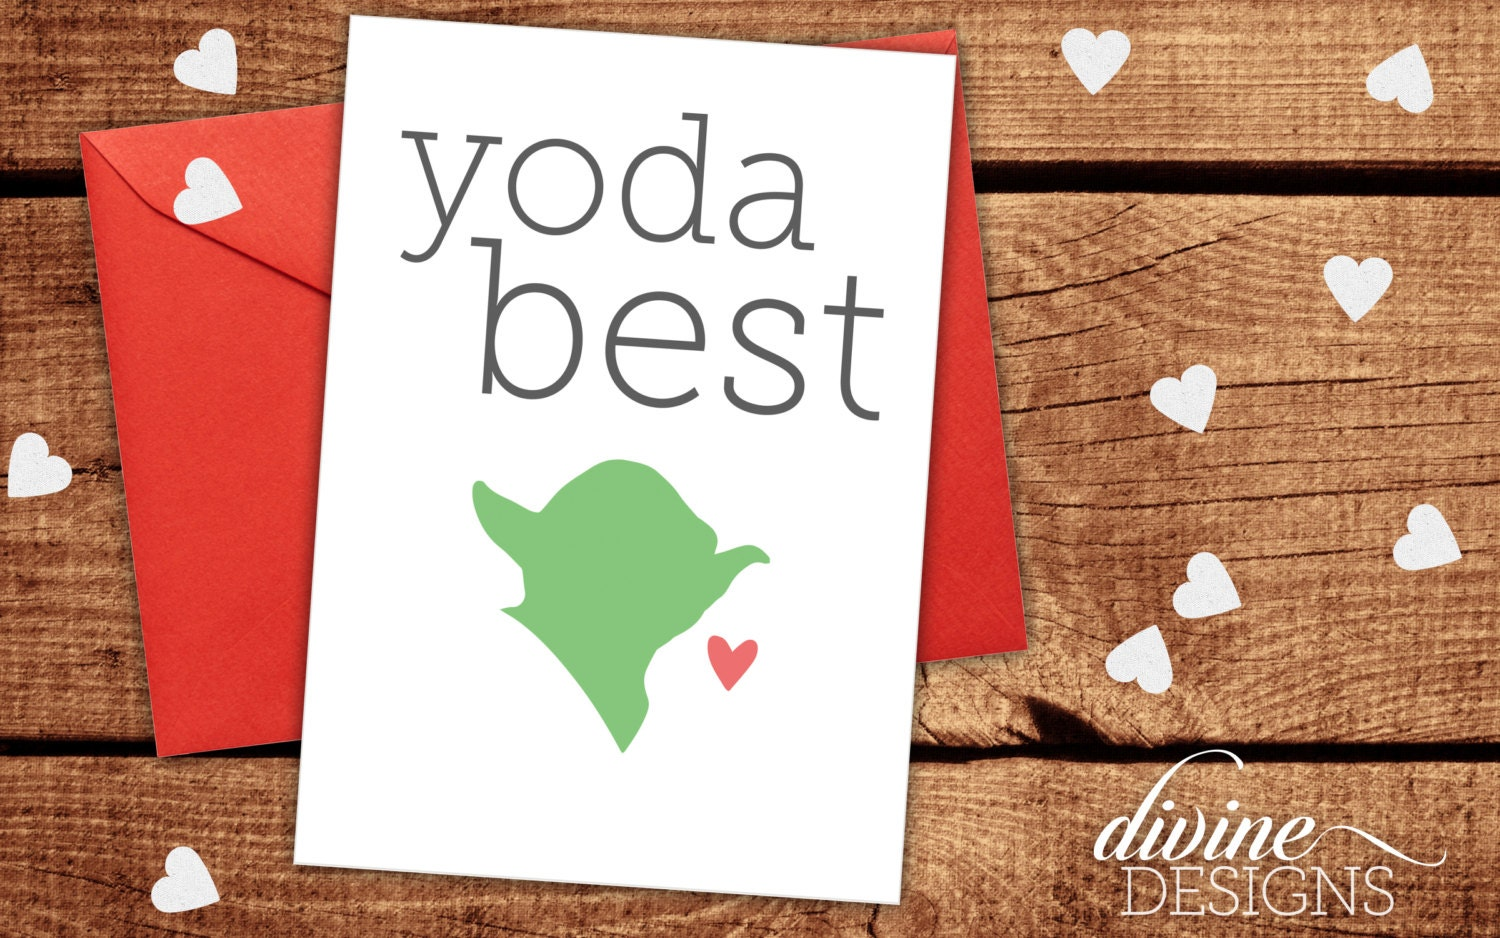 Yoda best star wars card funny valentines day card funny